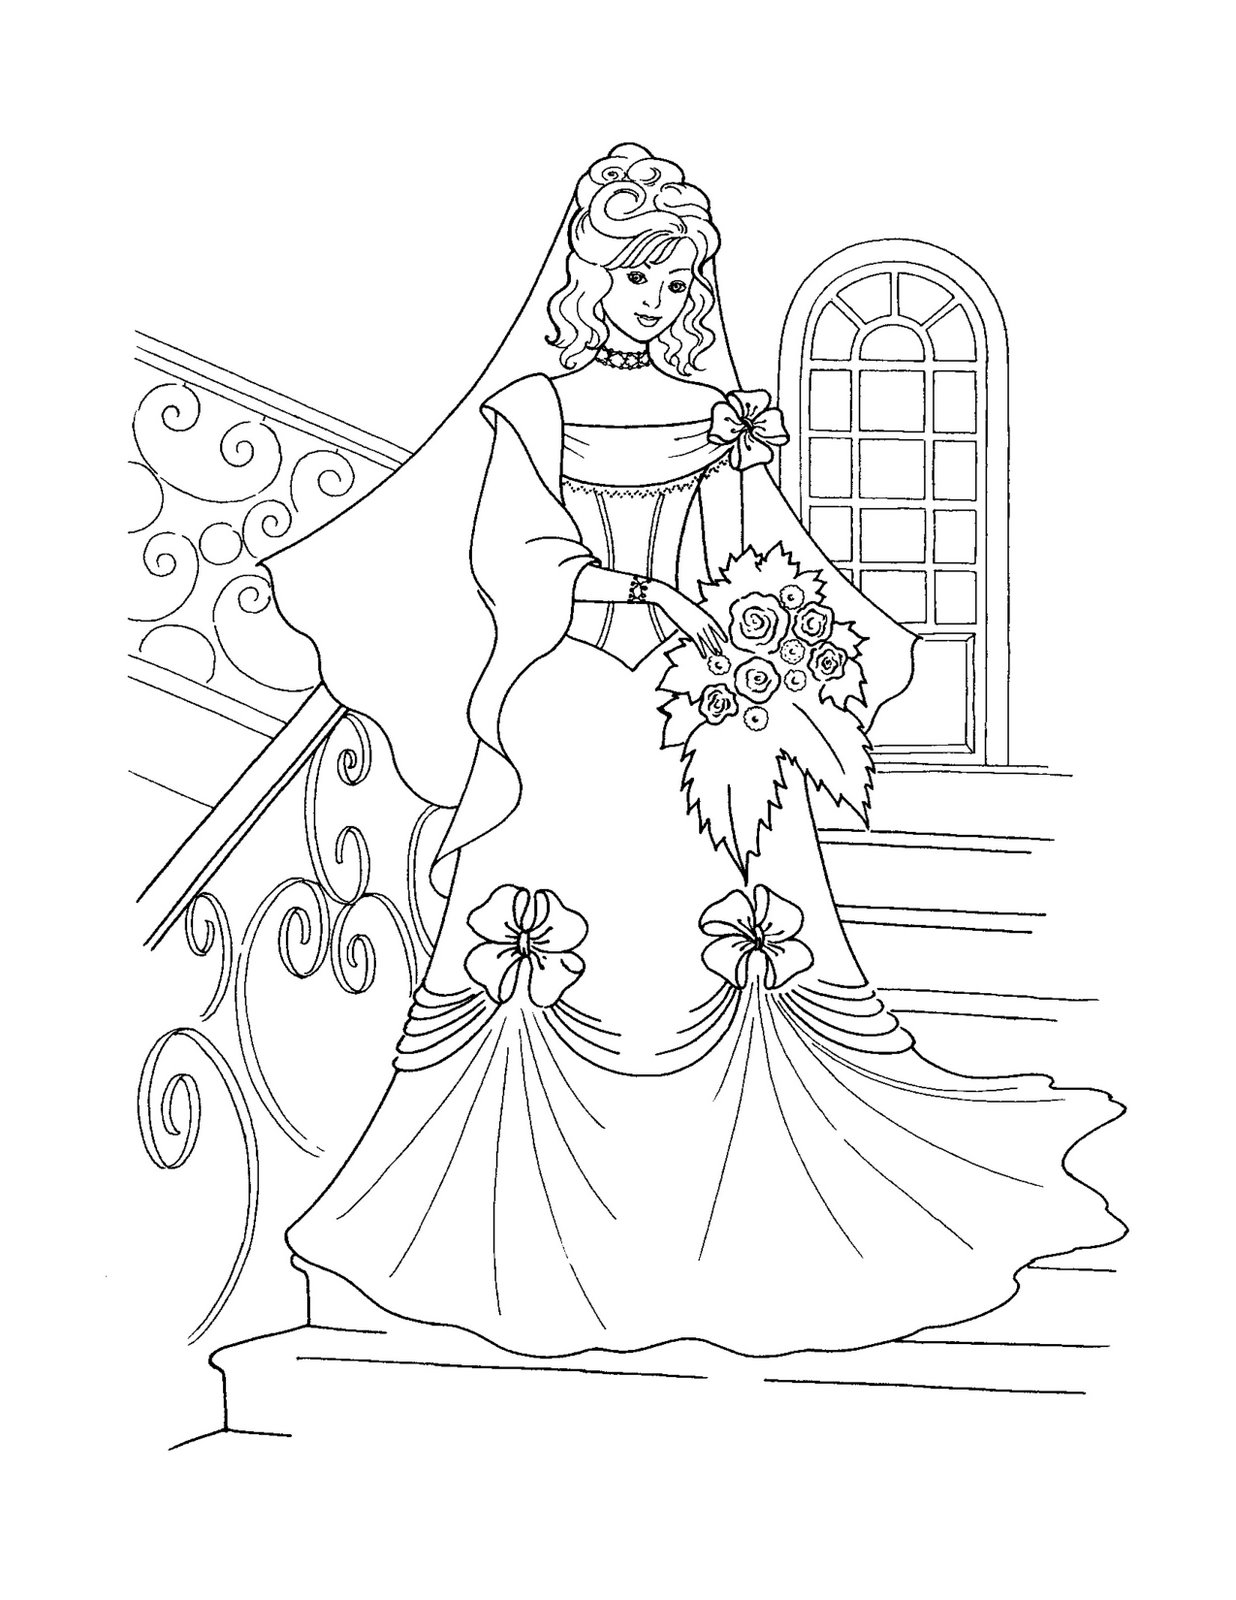 1236x1600 Disney Princess Christmas Coloring Pages For Kids Free Coloring Sheets